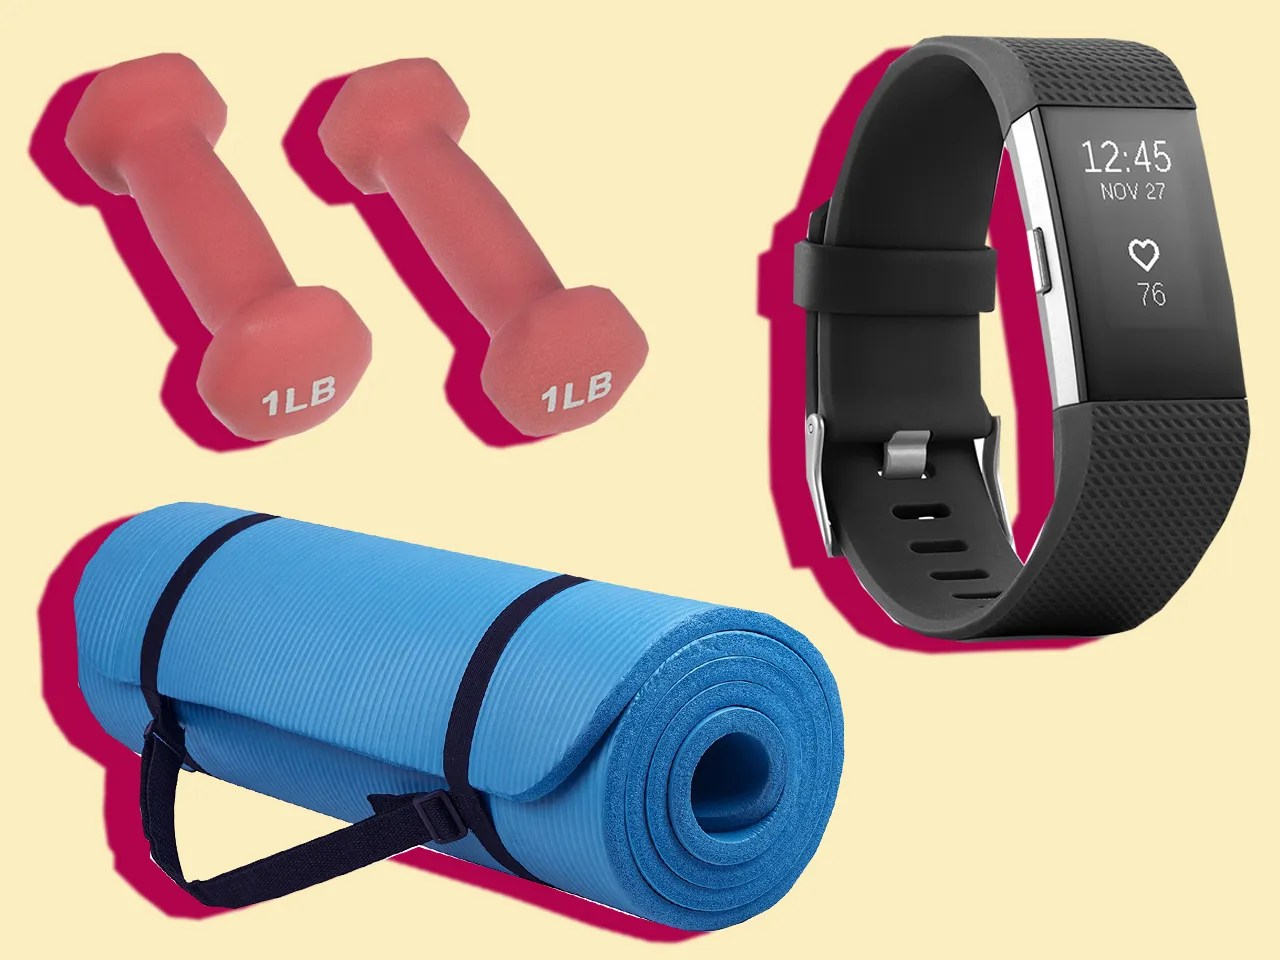 Amazon Yogamatte The Top Rated Fitness Gear On Amazon Right Now According To